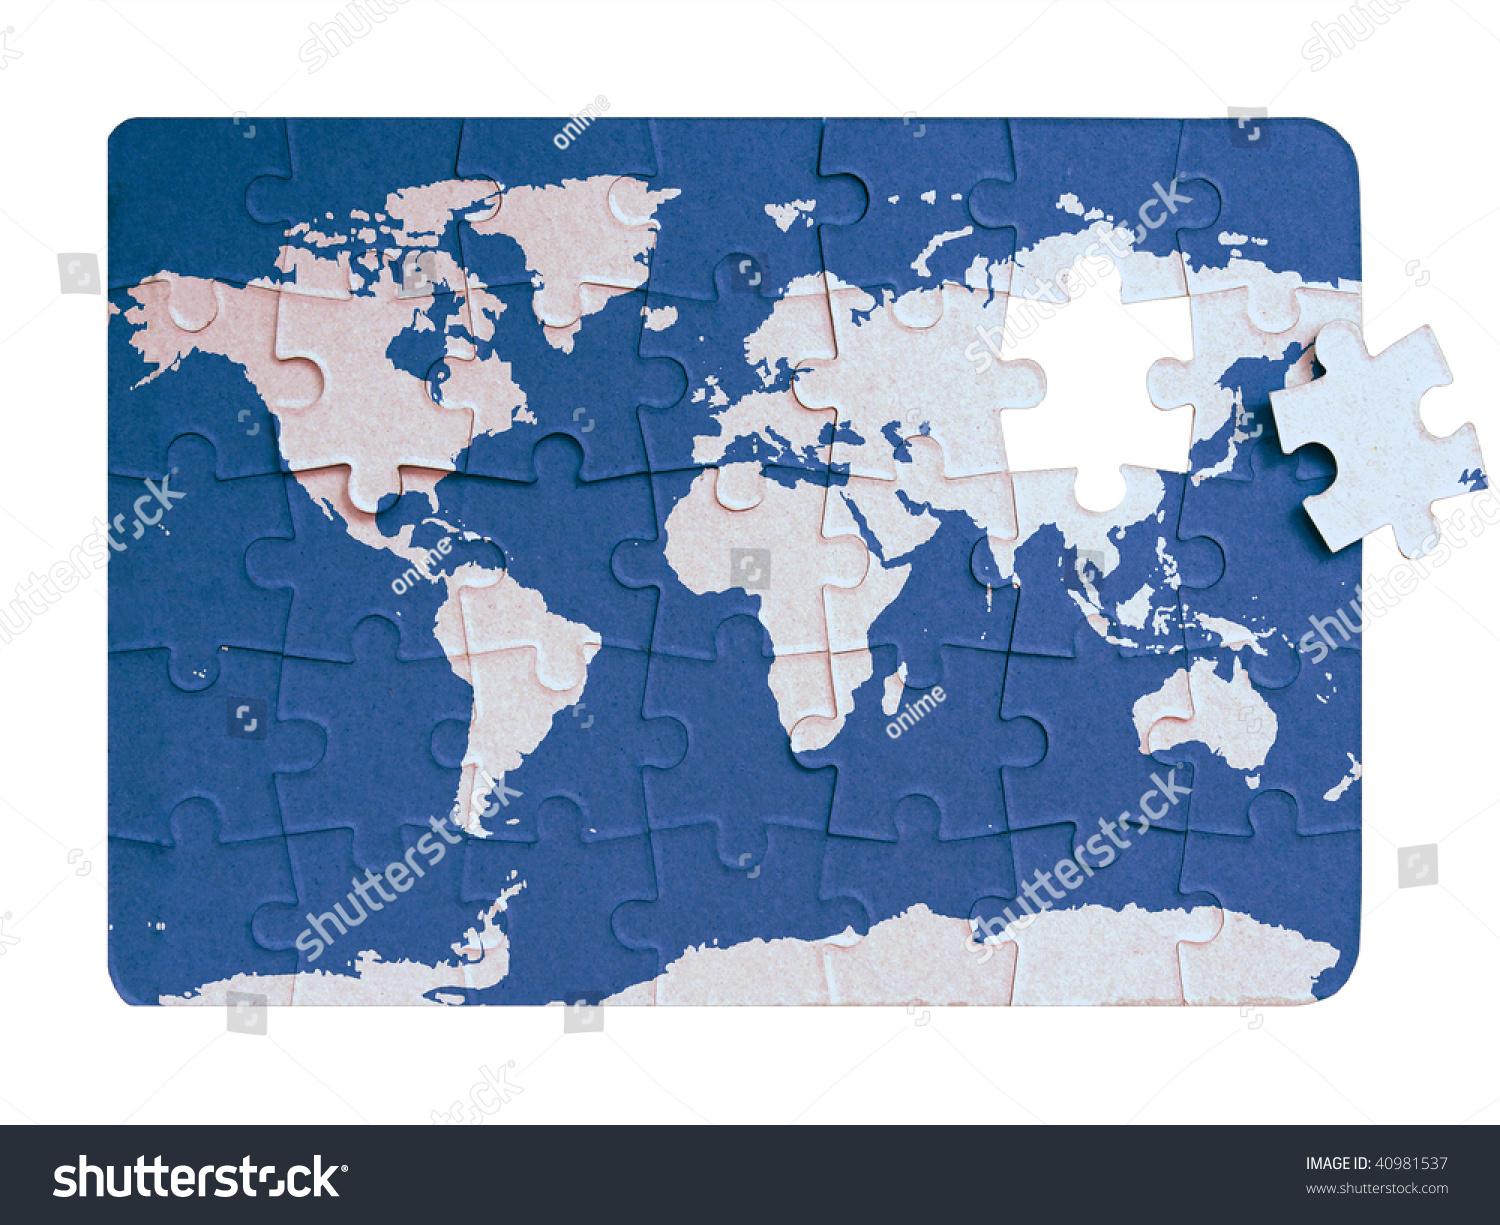 World map continents ocean on puzzle stock illustration 40981537 world map of continents and ocean on puzzle layered computer generate image gumiabroncs Images